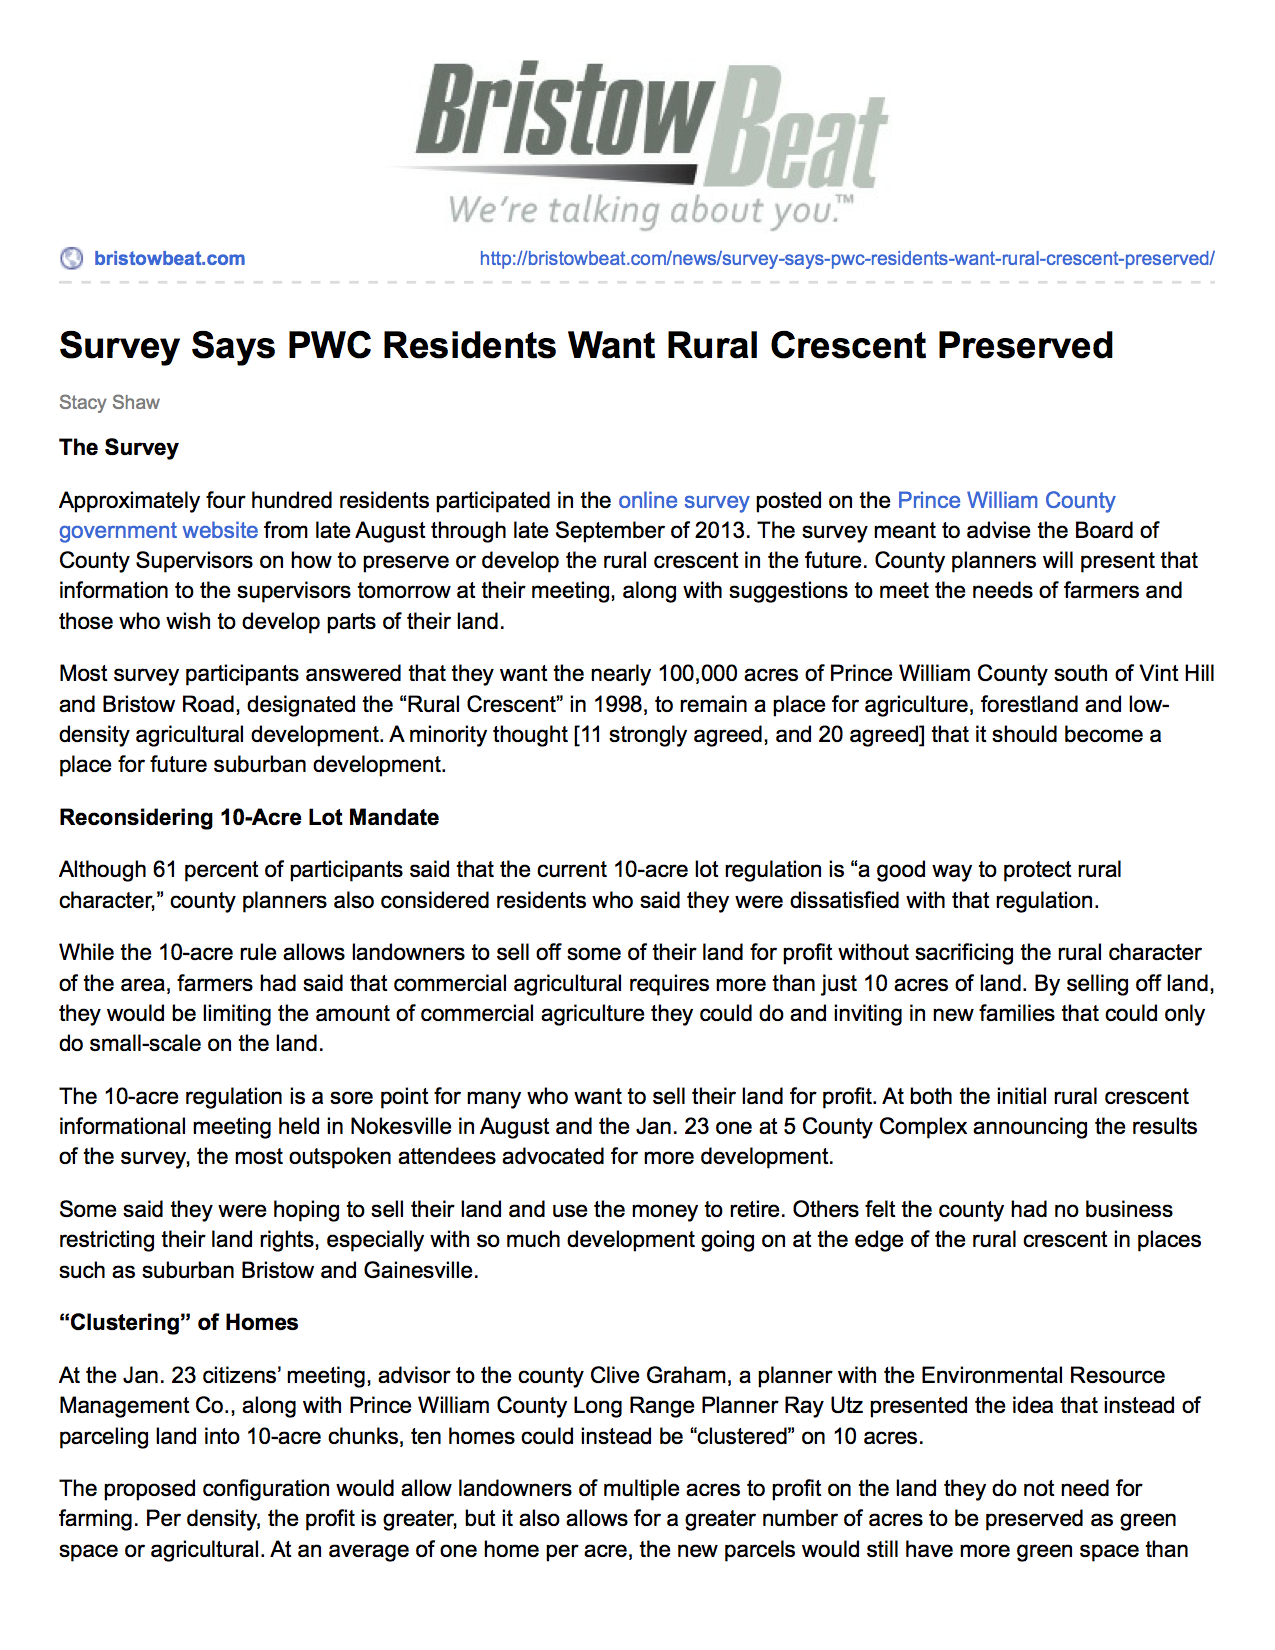 bristowbeat.com-Survey_Says_PWC_Residents_Want_Rural_Crescent_Preserved